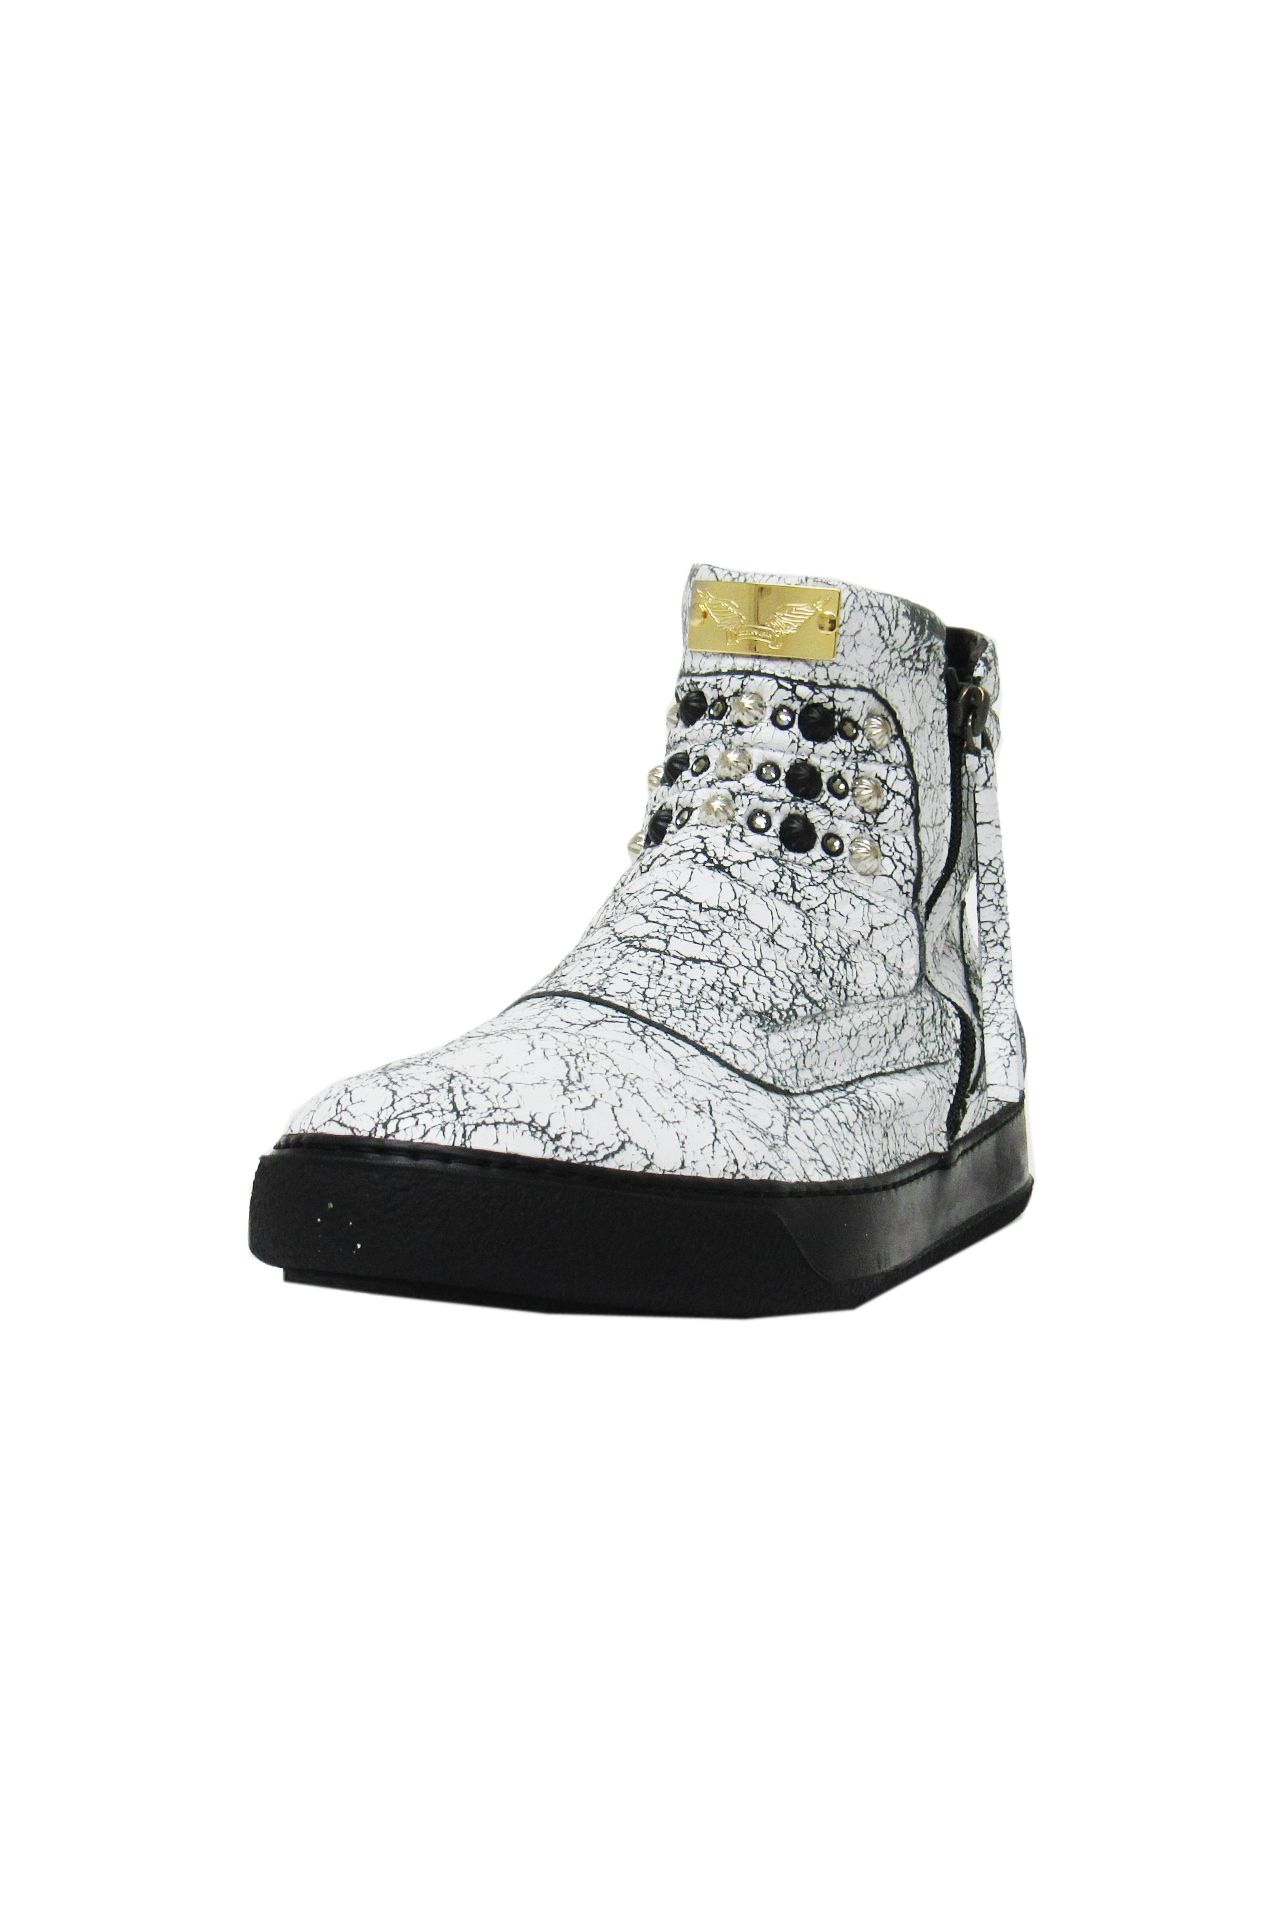 MID TOP CRACKLE WHITE STUDDED